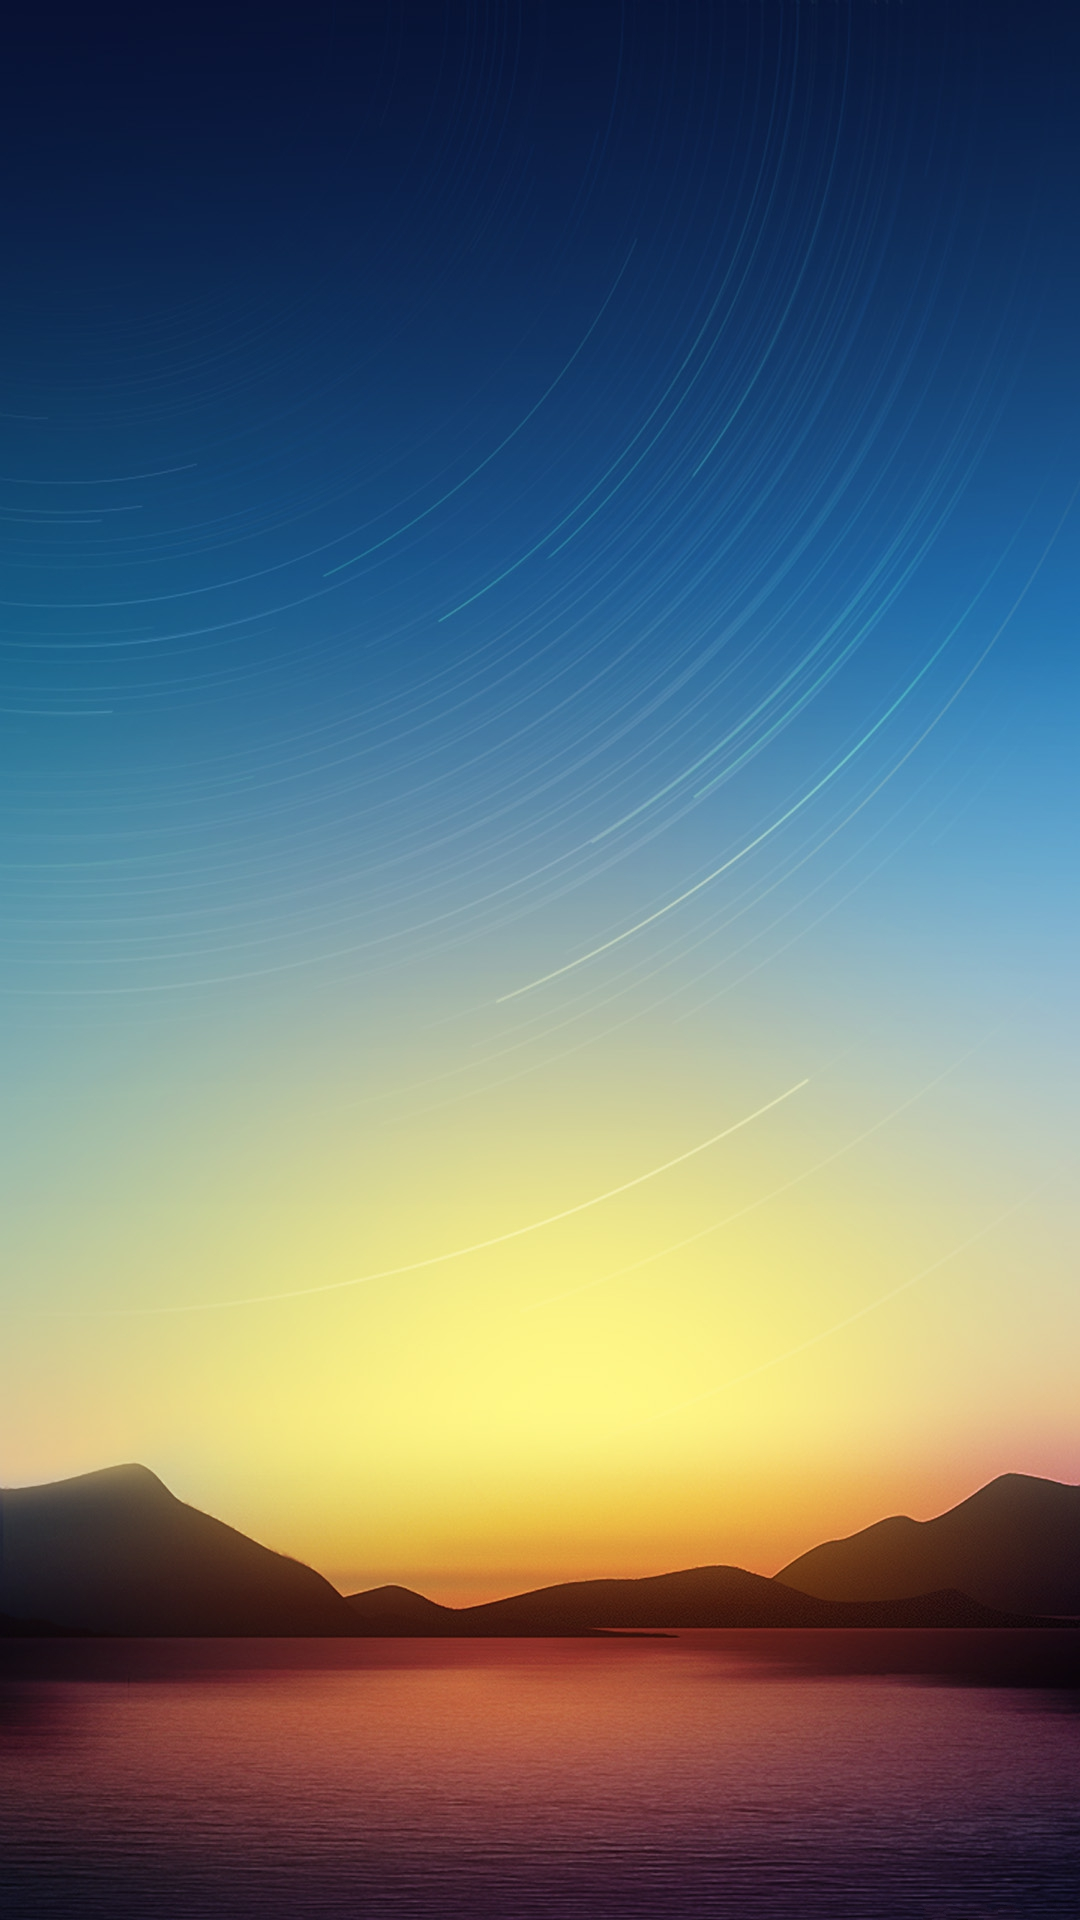 1080 x 1920 wallpapers vertical hd pixelstalk net